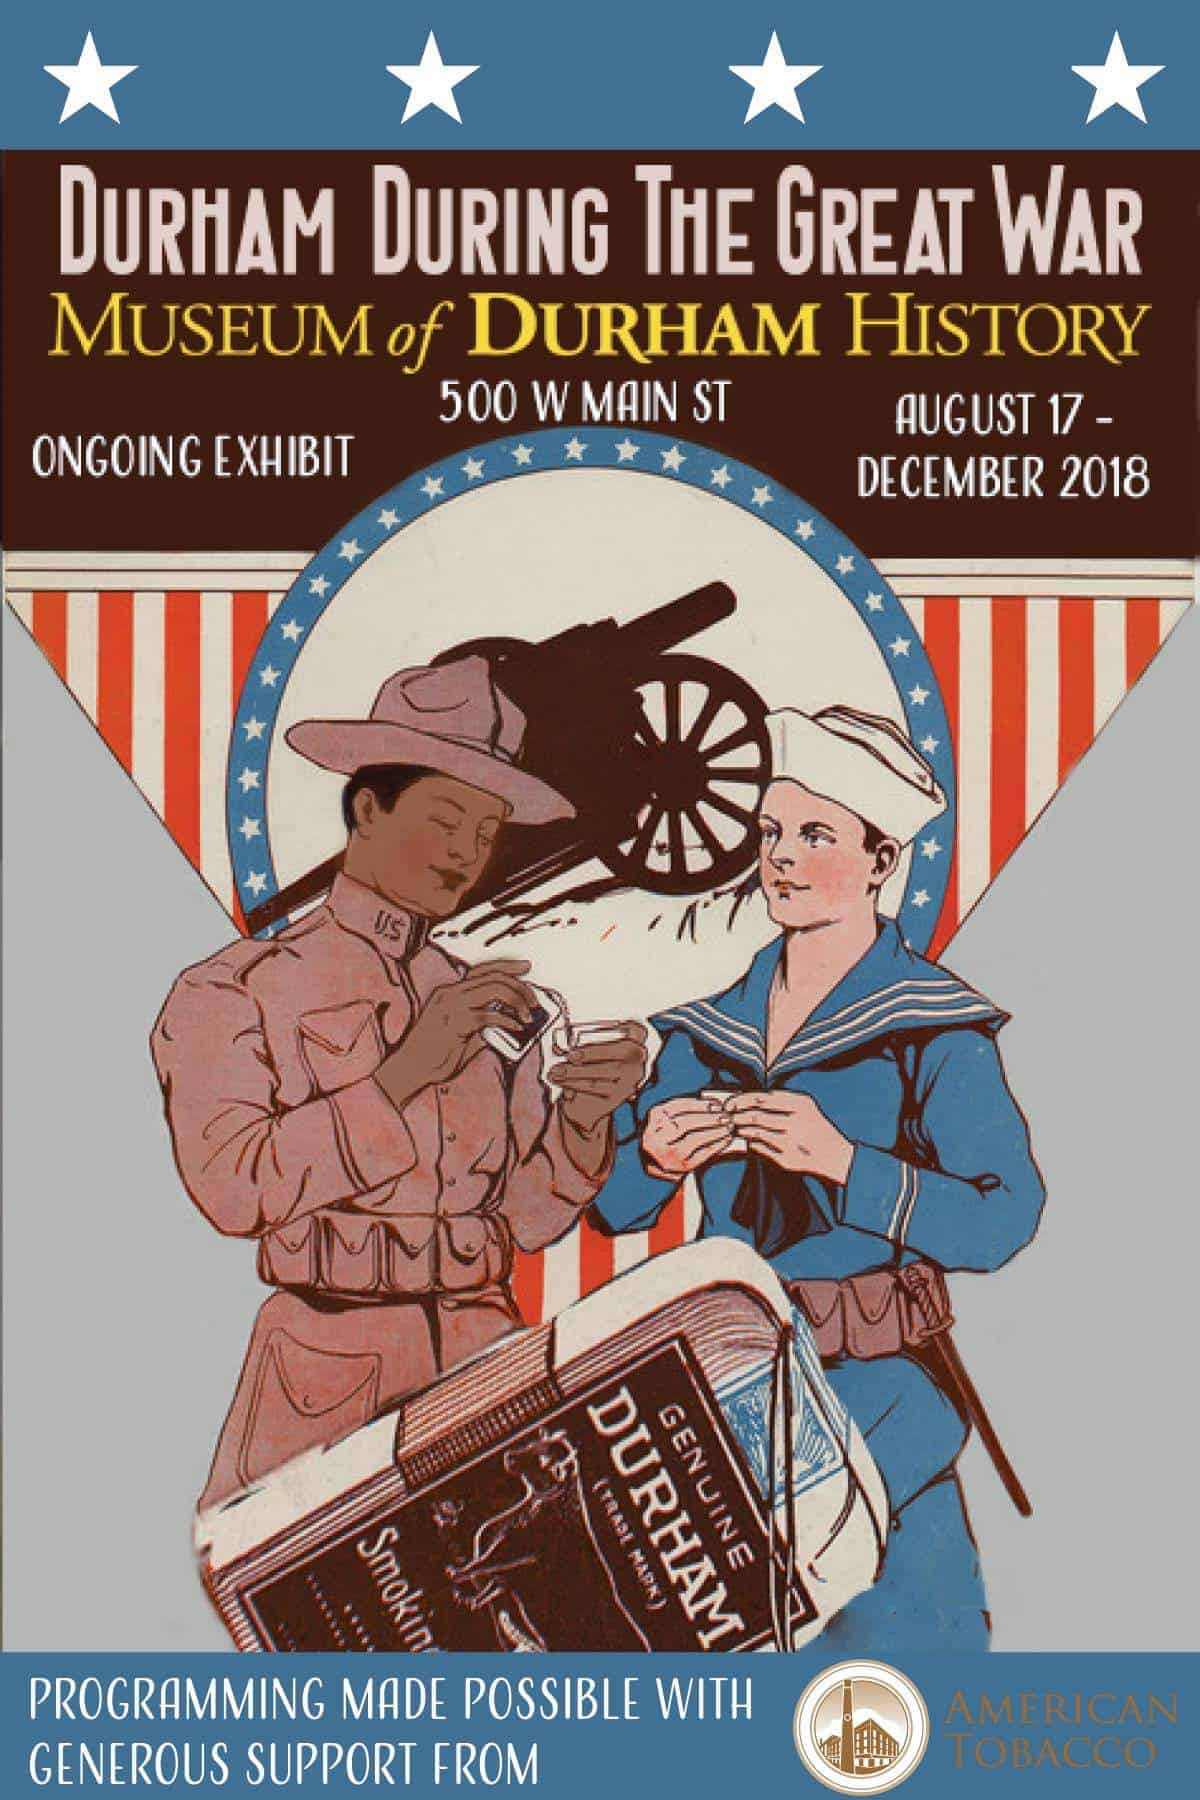 Durham During the Great War-Wraps up successful run with Public Event!